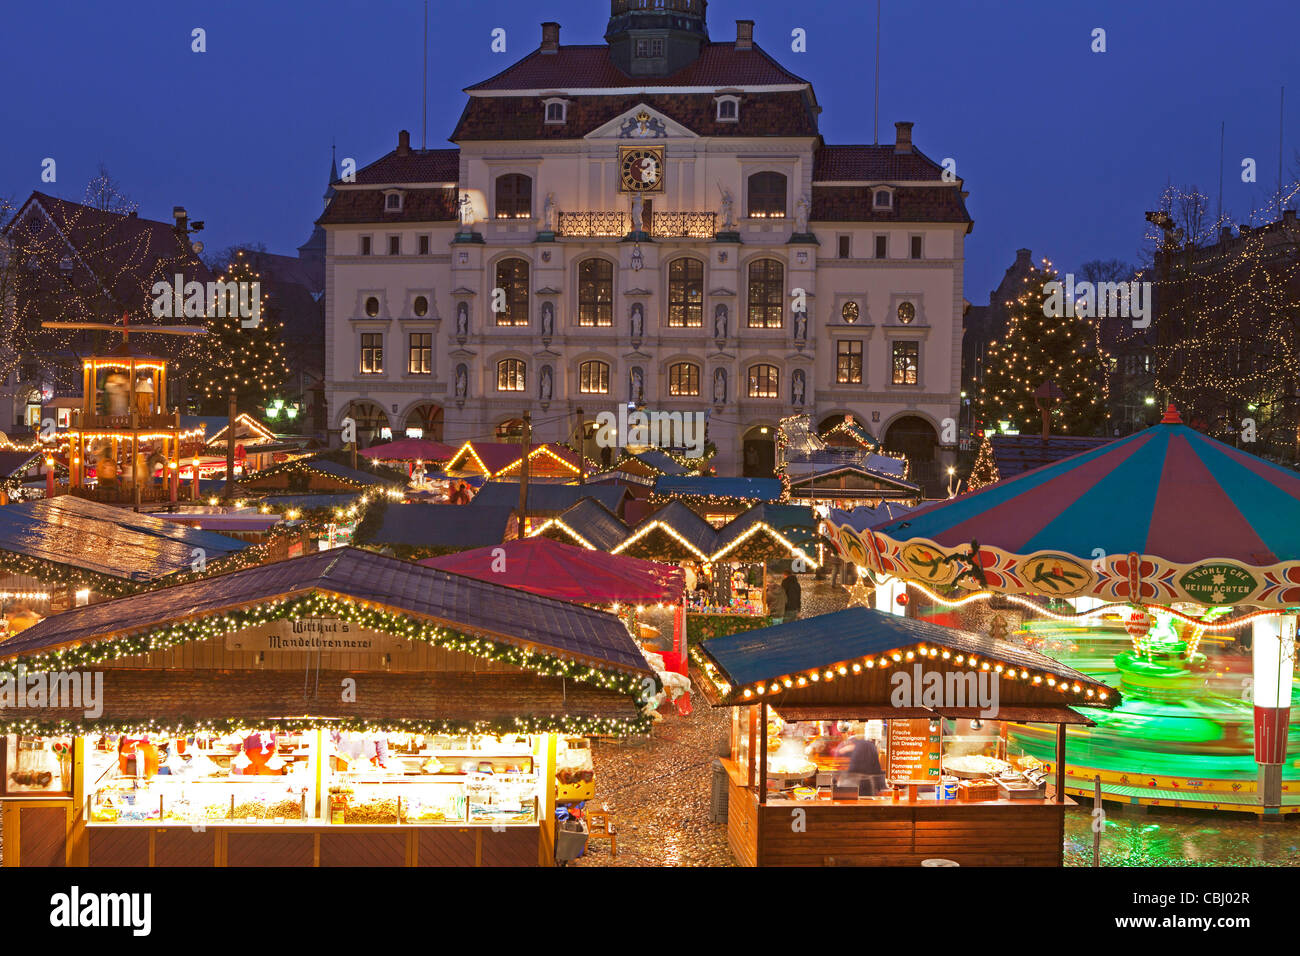 Christmas Market in front of the town hall, Lueneburg, Lower Saxony, Germany Stock Photo